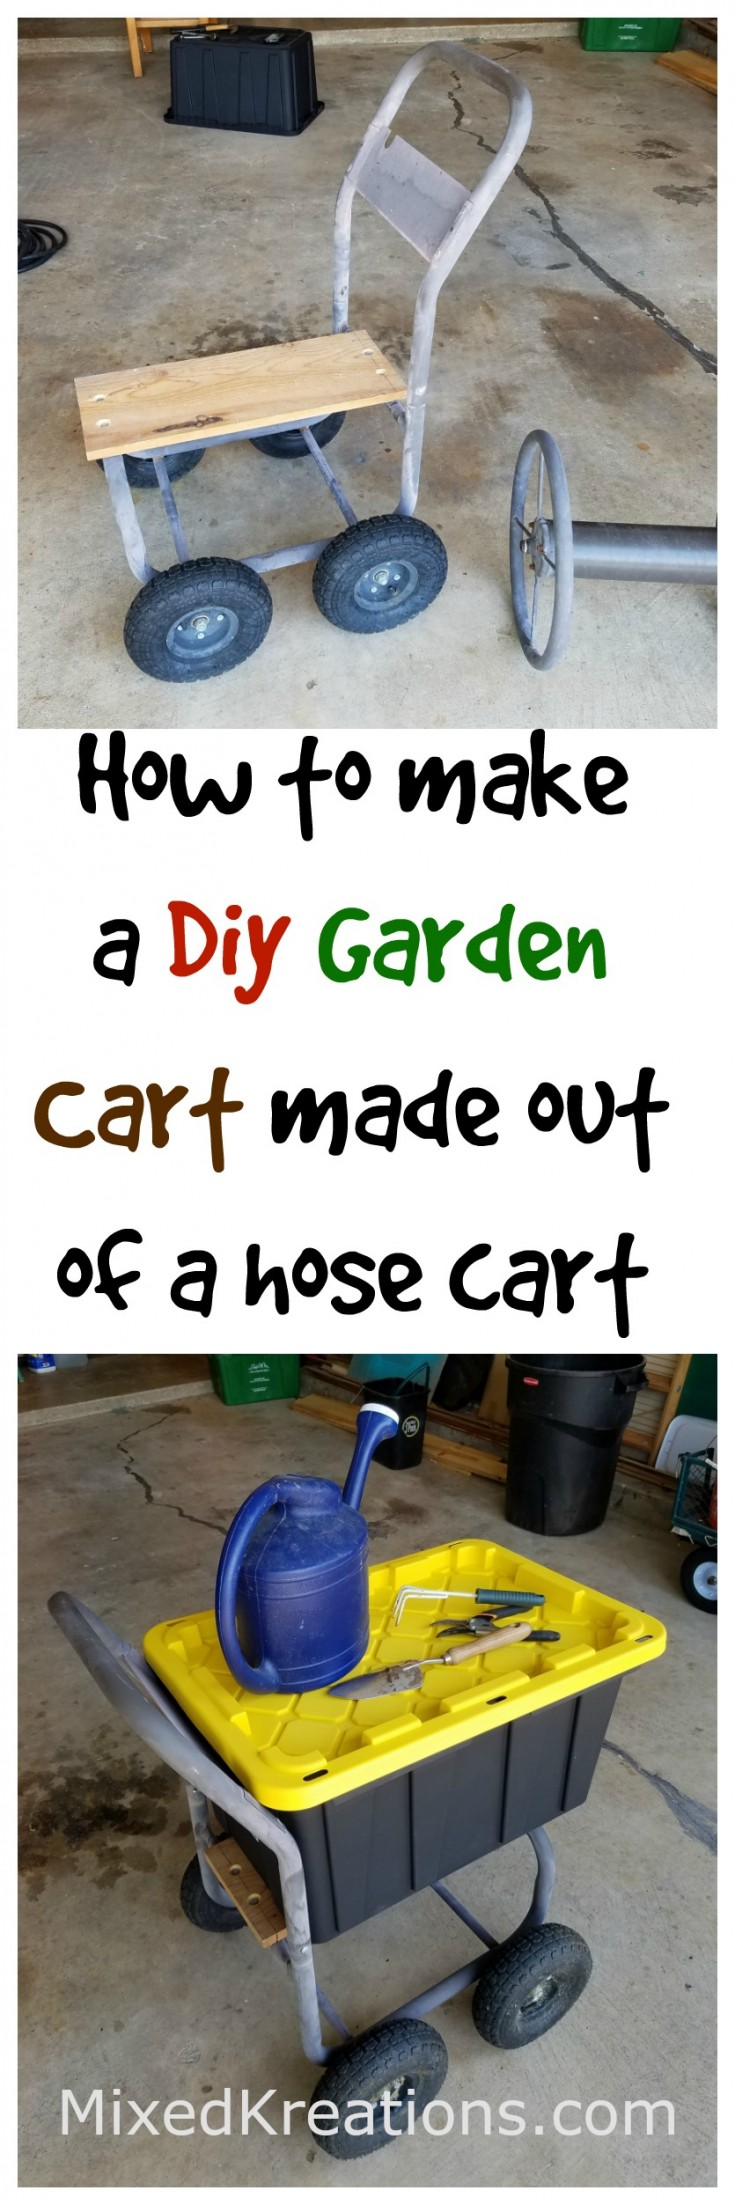 How to make a garden cart out of a hose cart | diy garden cart | repurposed hose cart | upcycled hose cart #Diy #GardenCart #Repurposed #Upcycled Mixedkreations.com